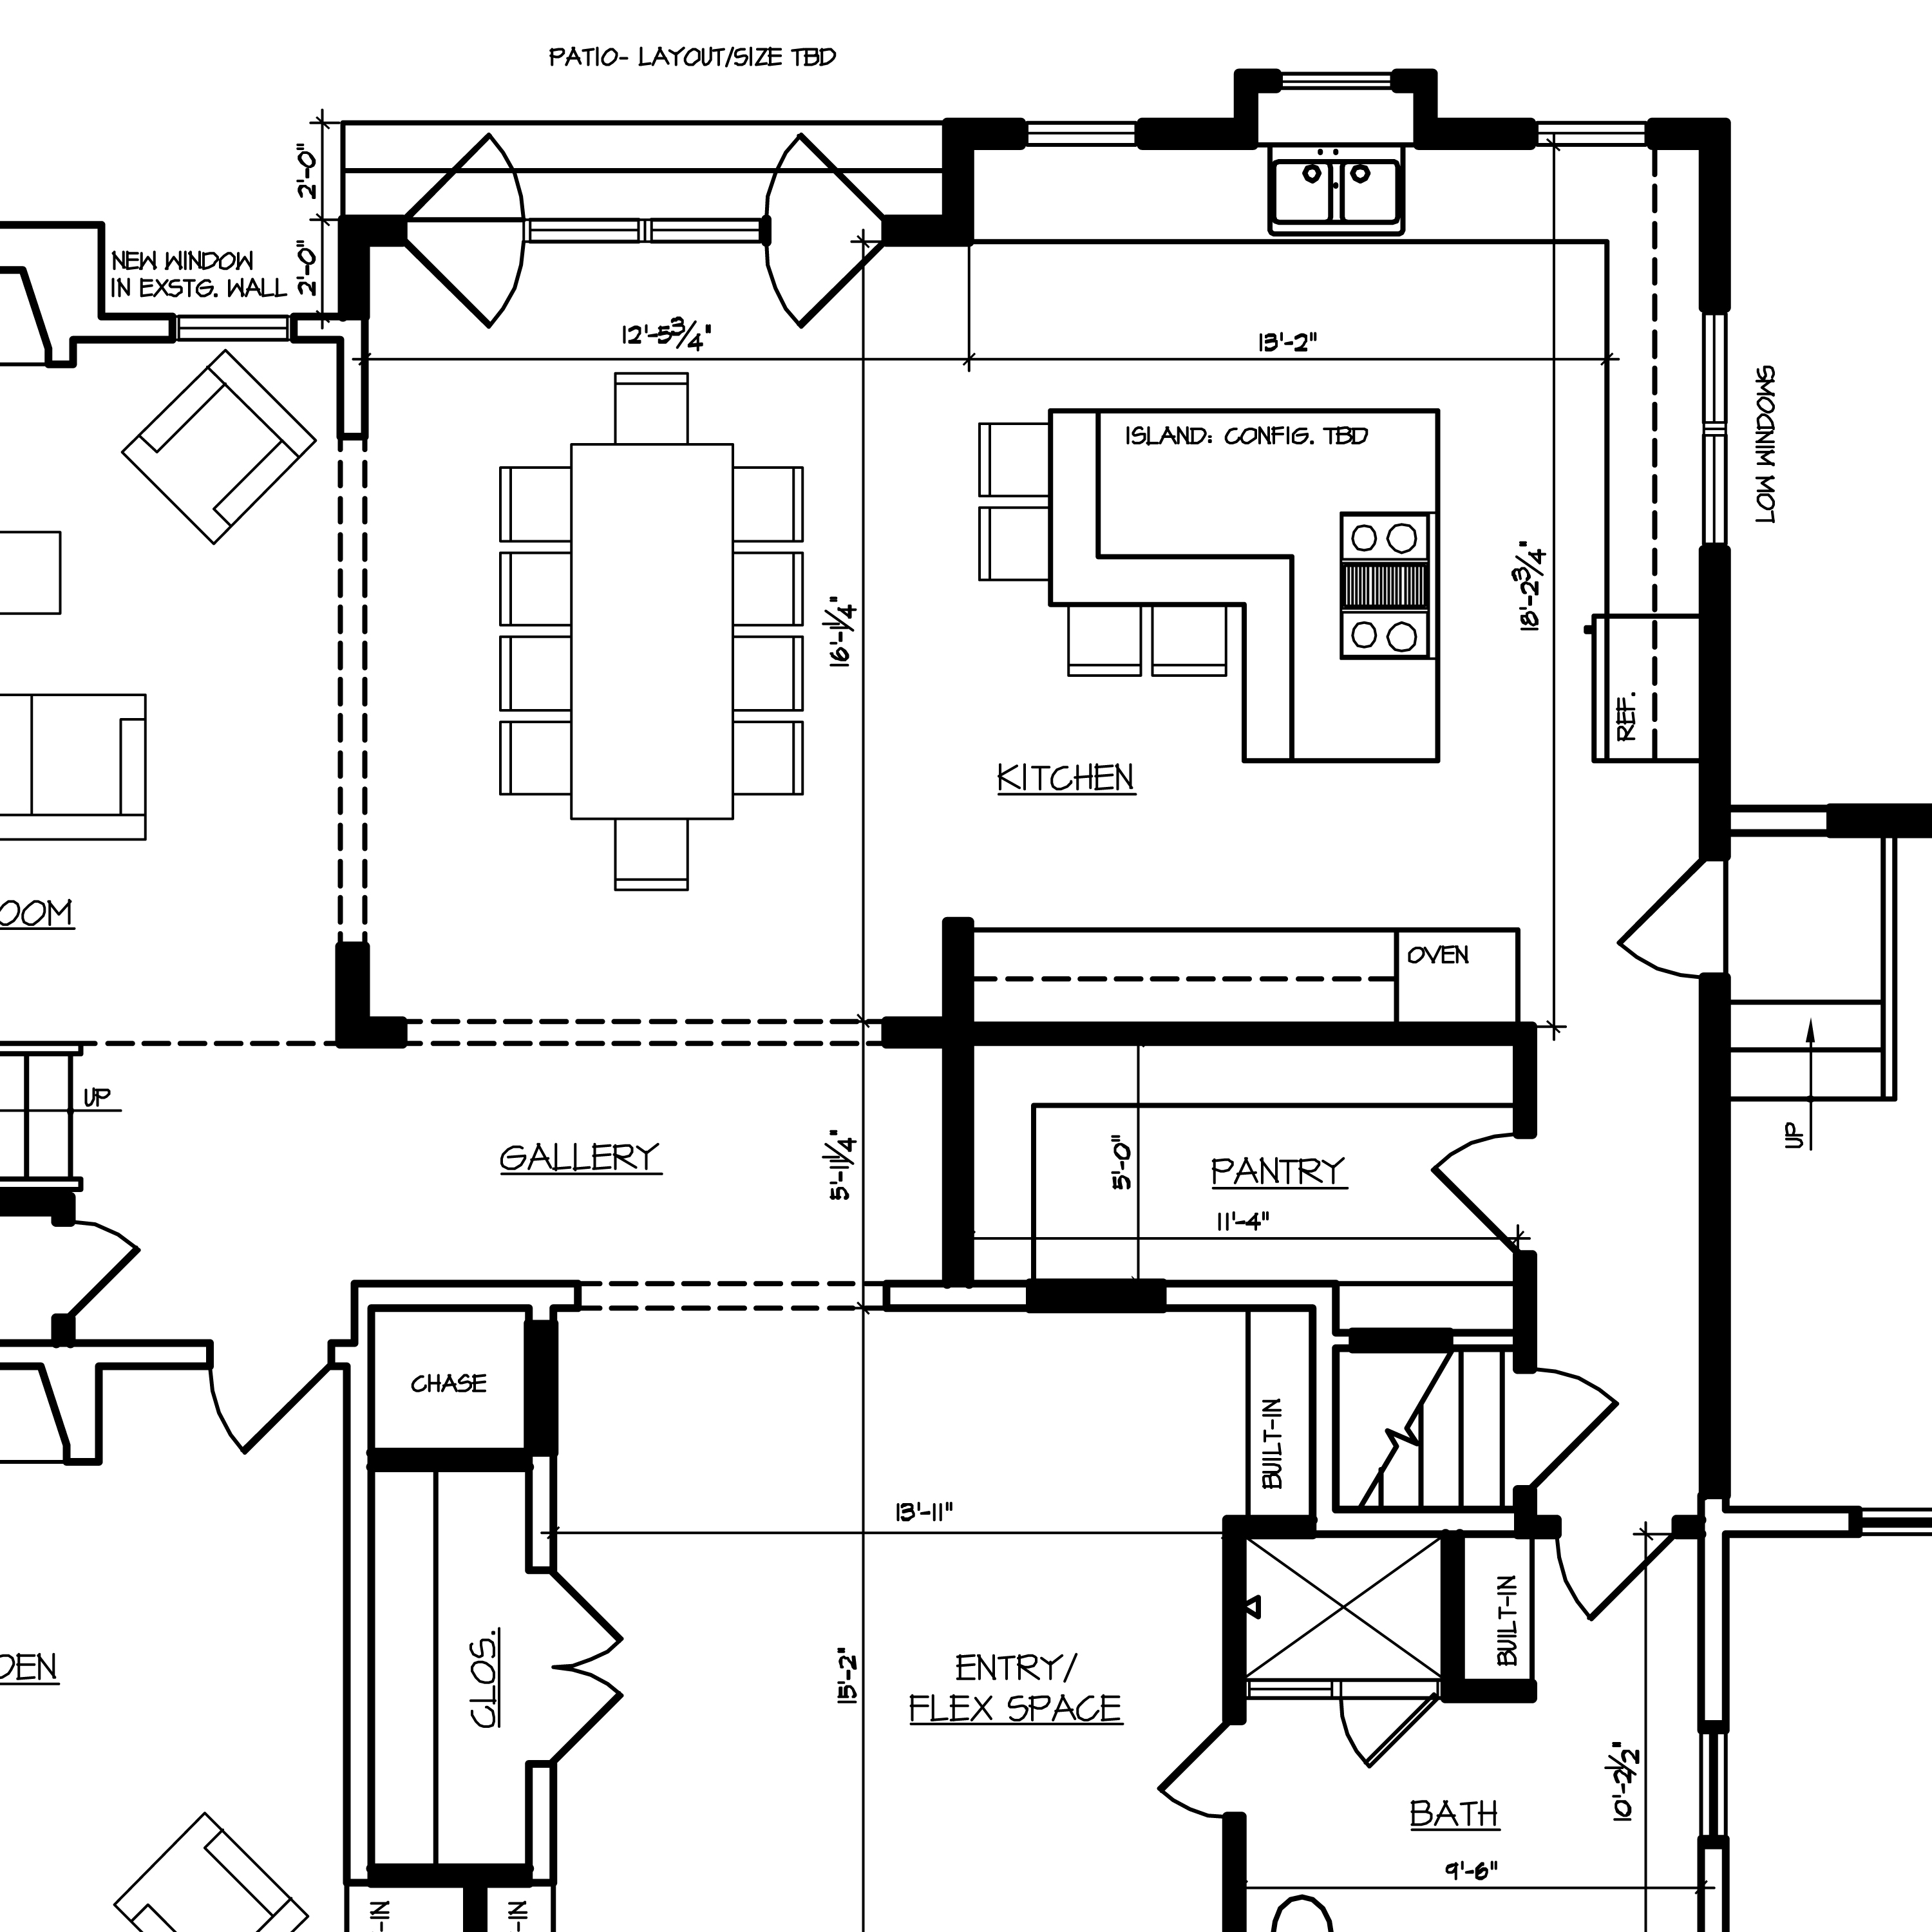 3000x3000 Residential Single Family Custom Home Architect's Trace